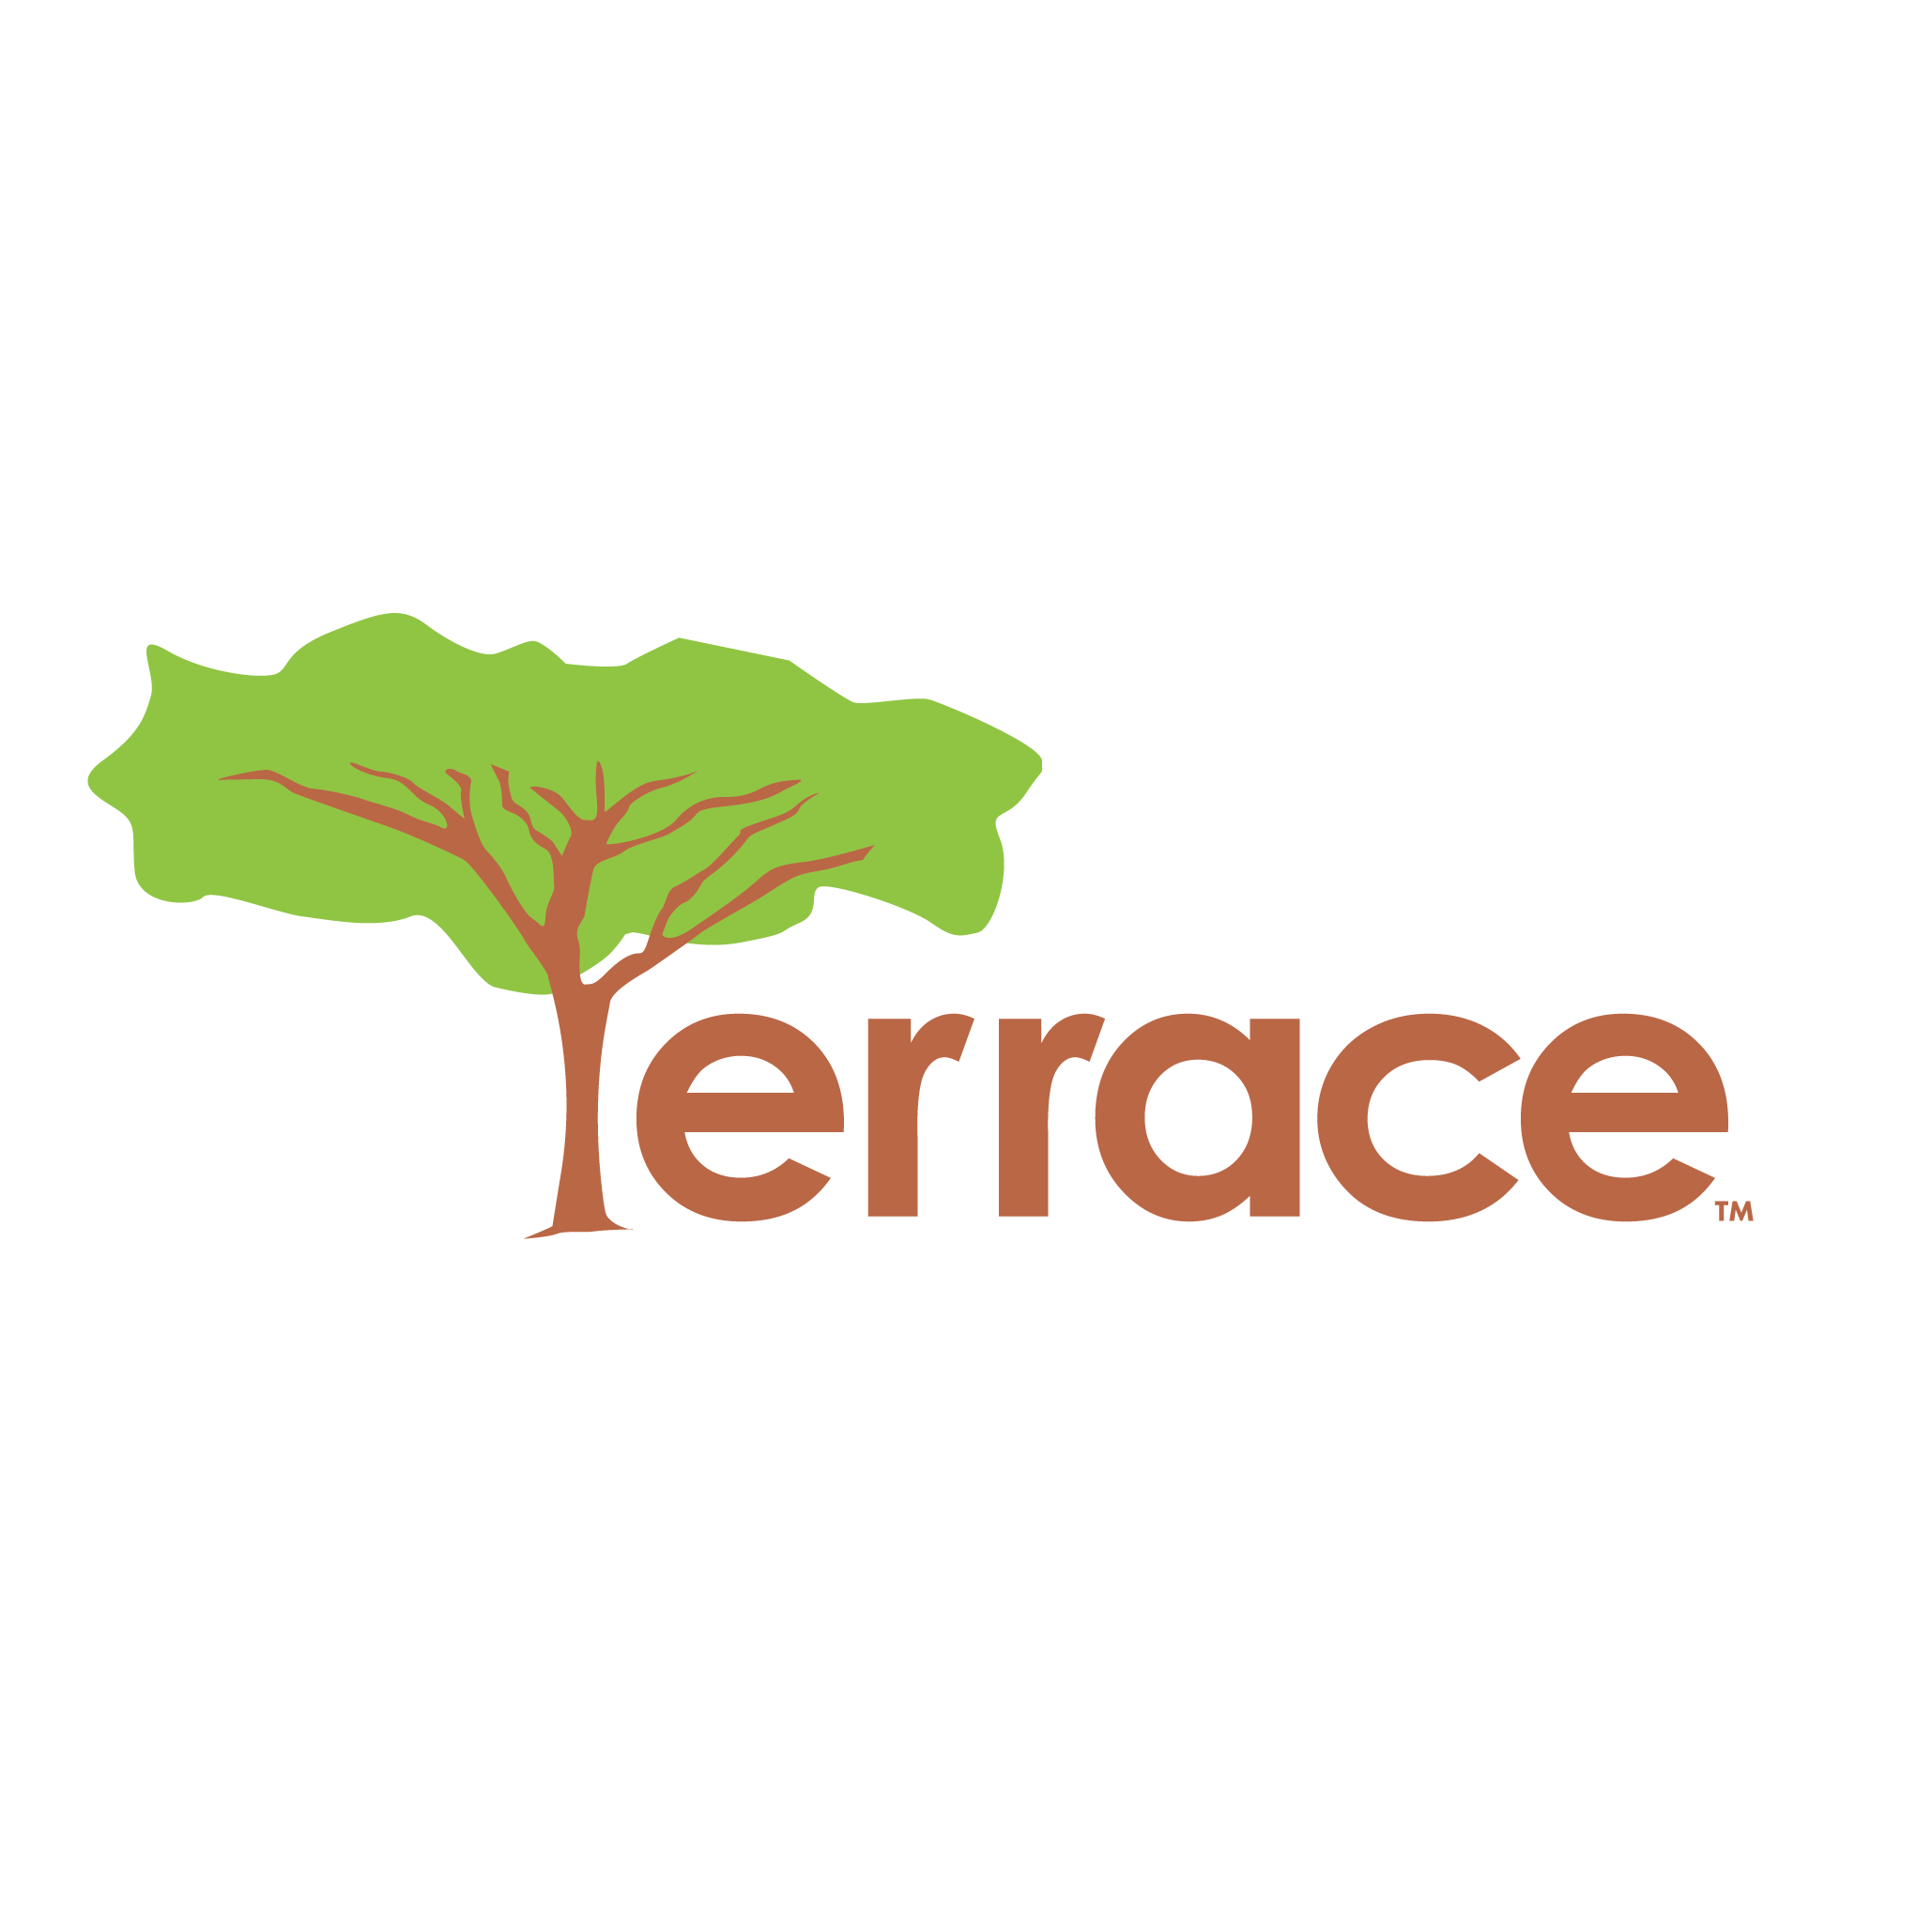 Terrace restaurants coupons near me in charlotte 8coupons for Terrace restaurant charlotte